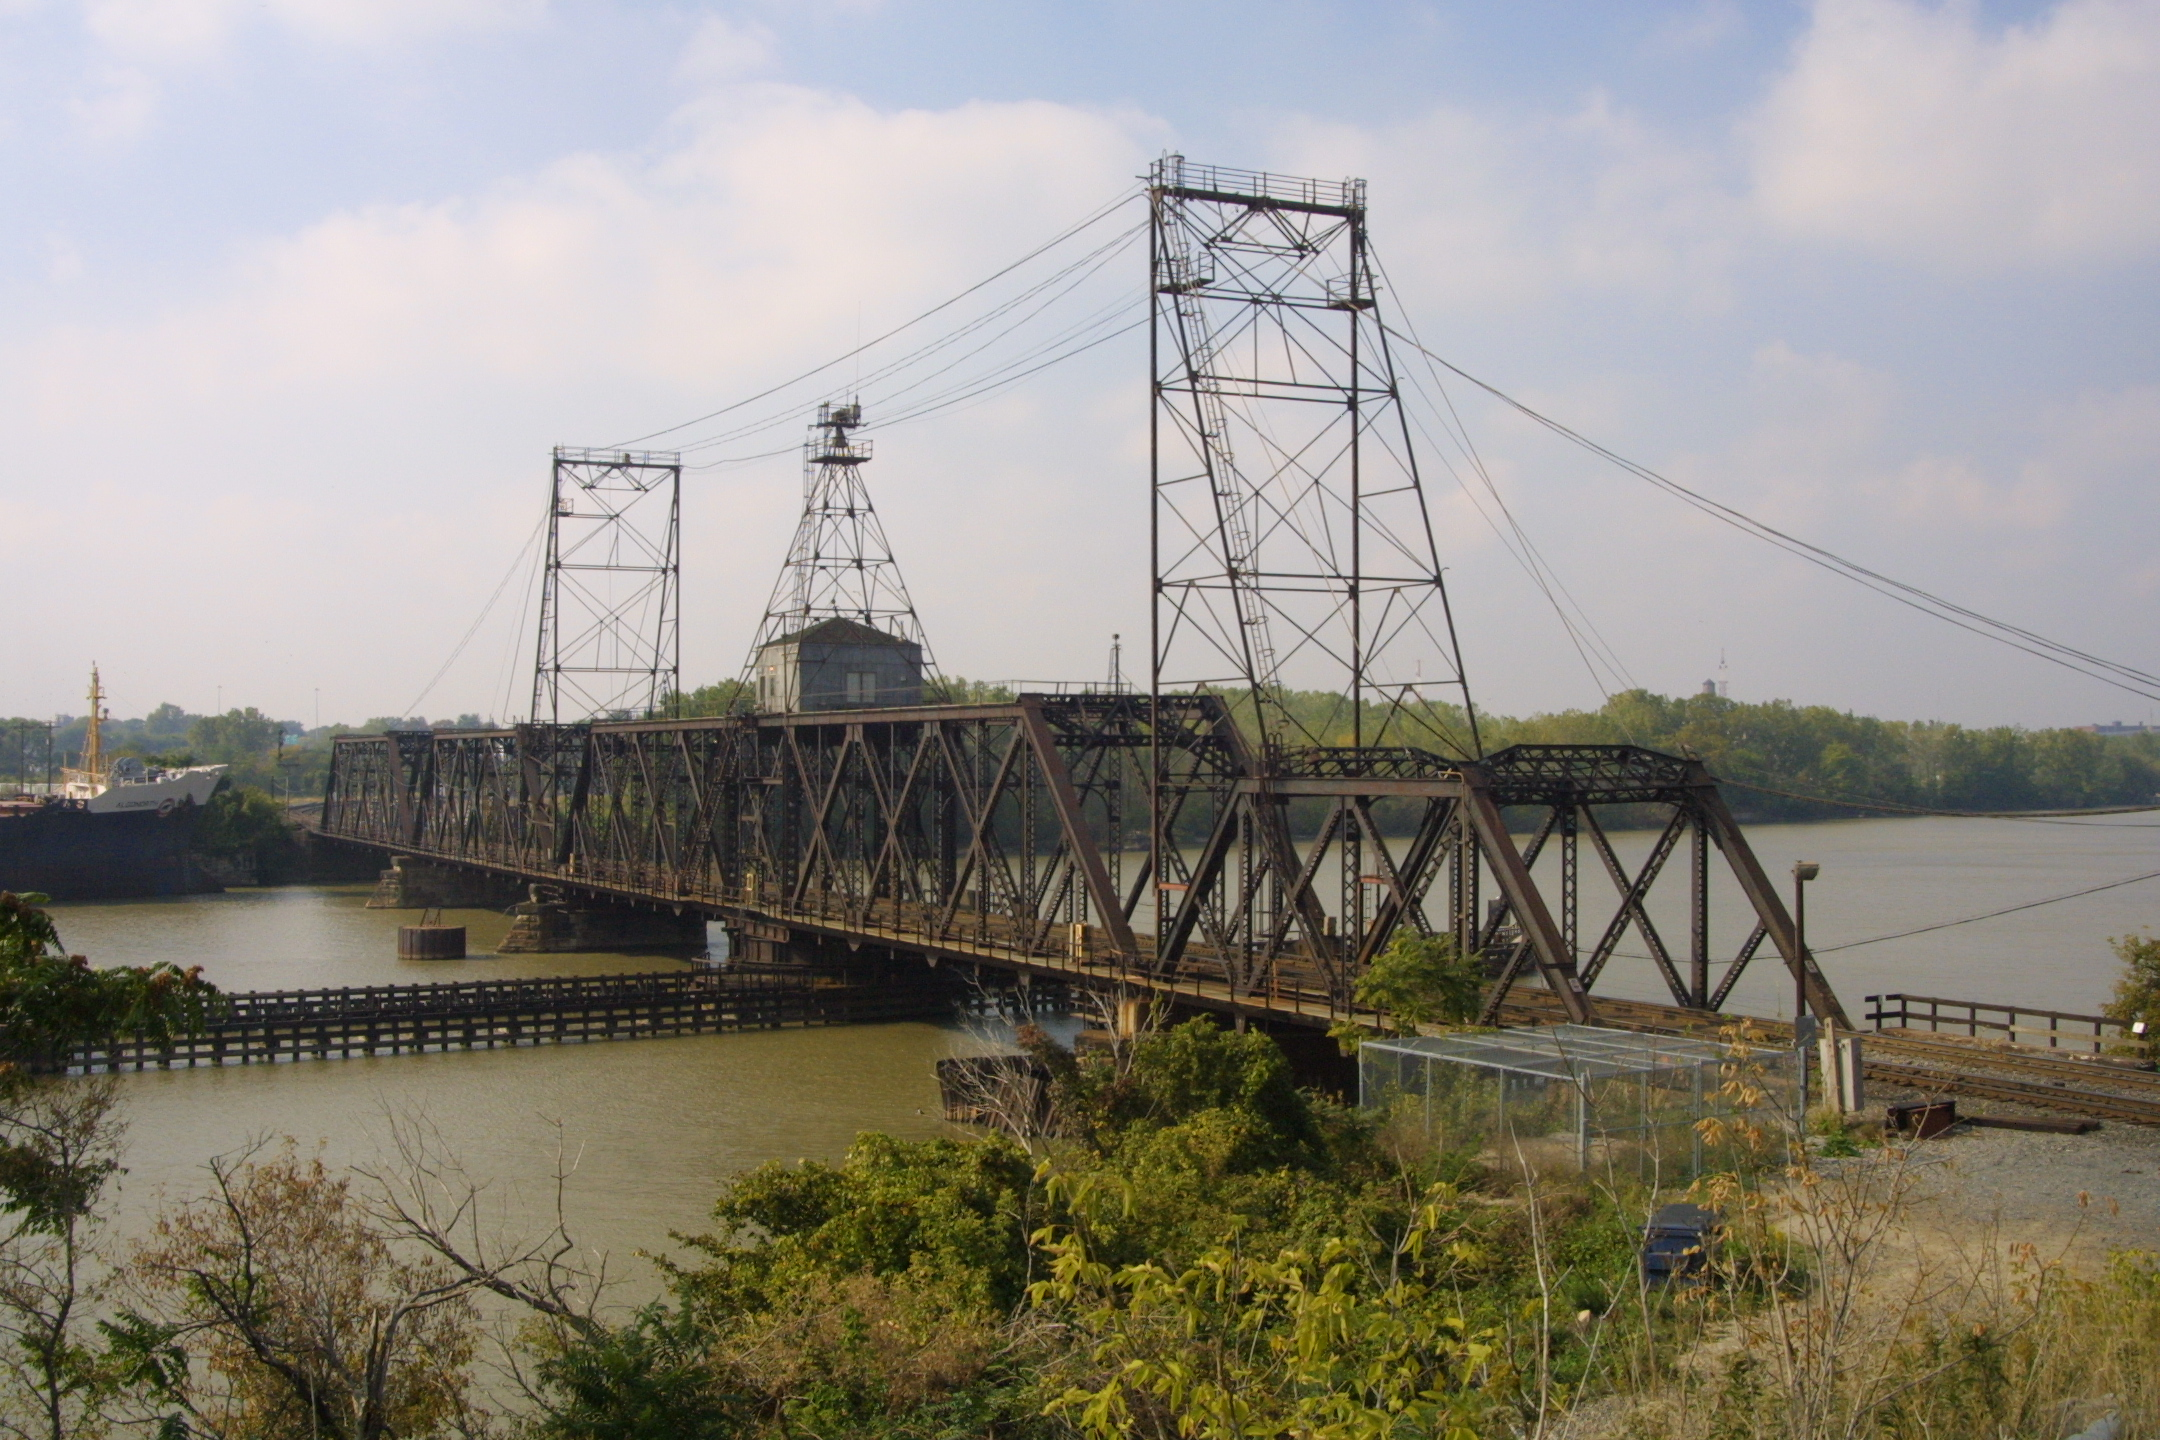 NS NYC Maumee River Bridge Toledo OH 0ctober, 2002